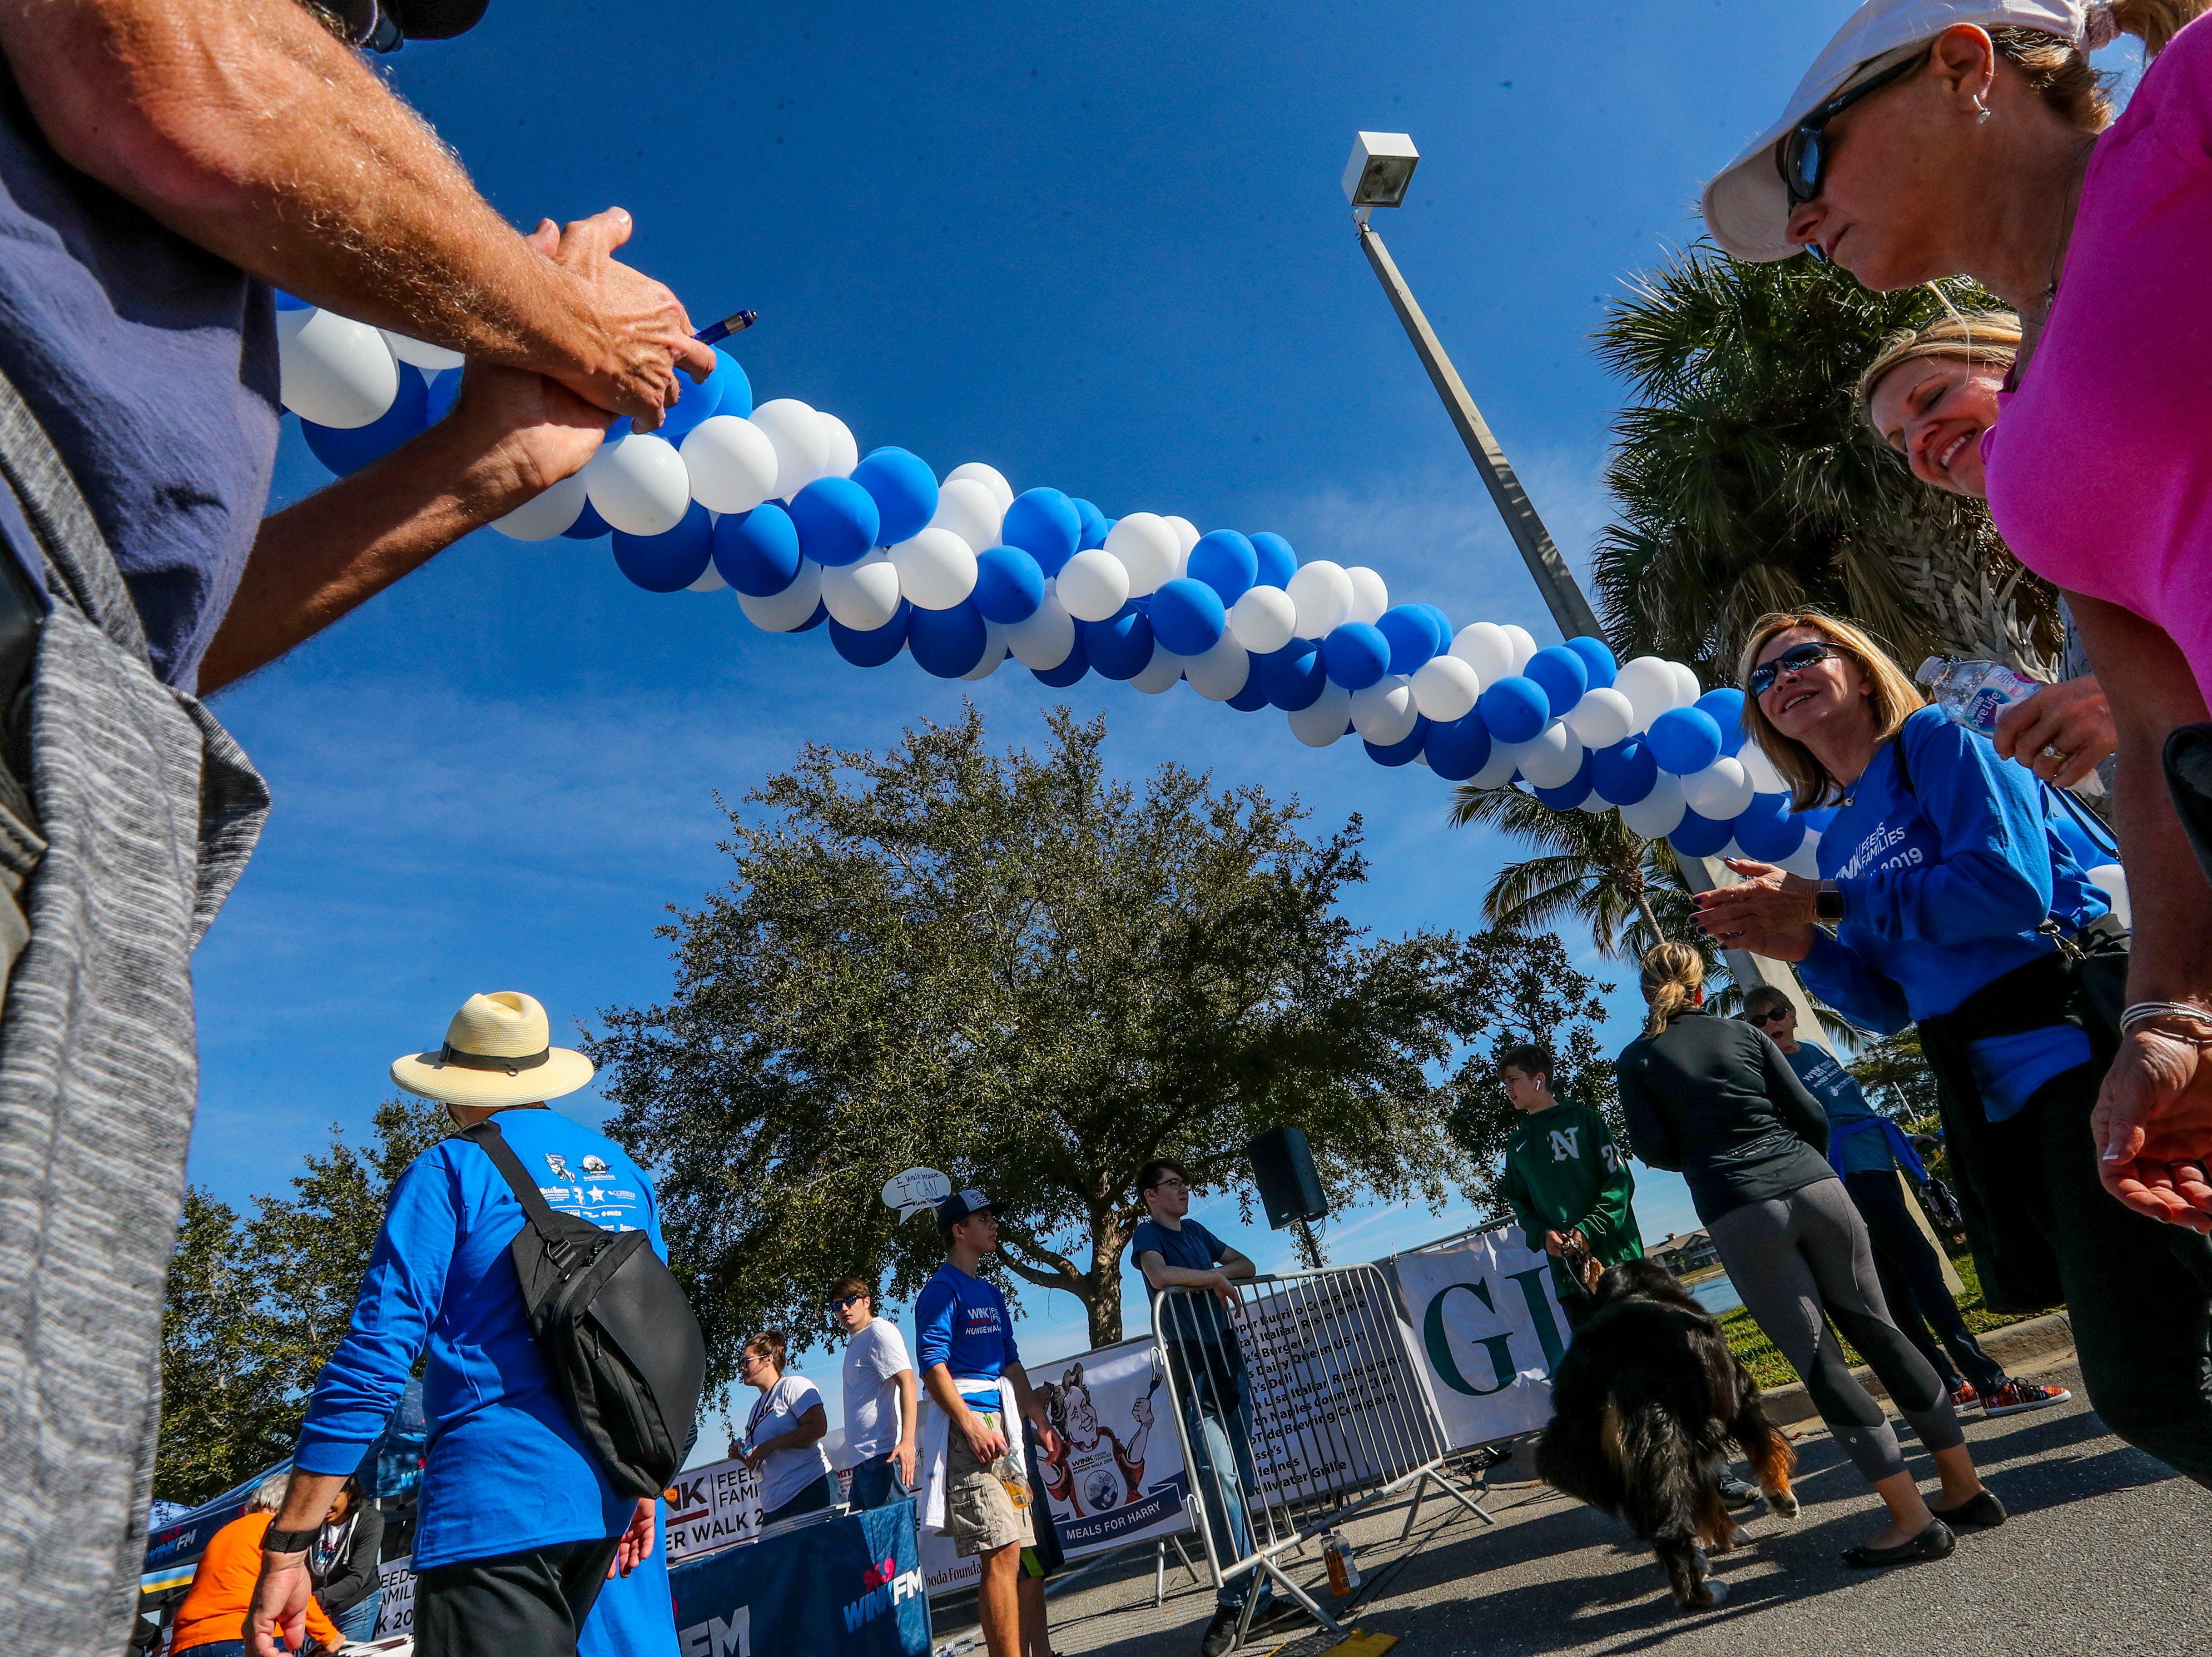 Jon Cohn, a walk volunteer, greets the walkers with a cheer as he encourages them at the end of the race. The 11th annual WINK Feeds Family hunger walk that supports the Harry Chapin Food Bank of Southwest Florida went off Saturday, January 19, 2019. The walk was held at Miromar Outlets in Estero, FL, and they did a 2 mile walk around the mall.